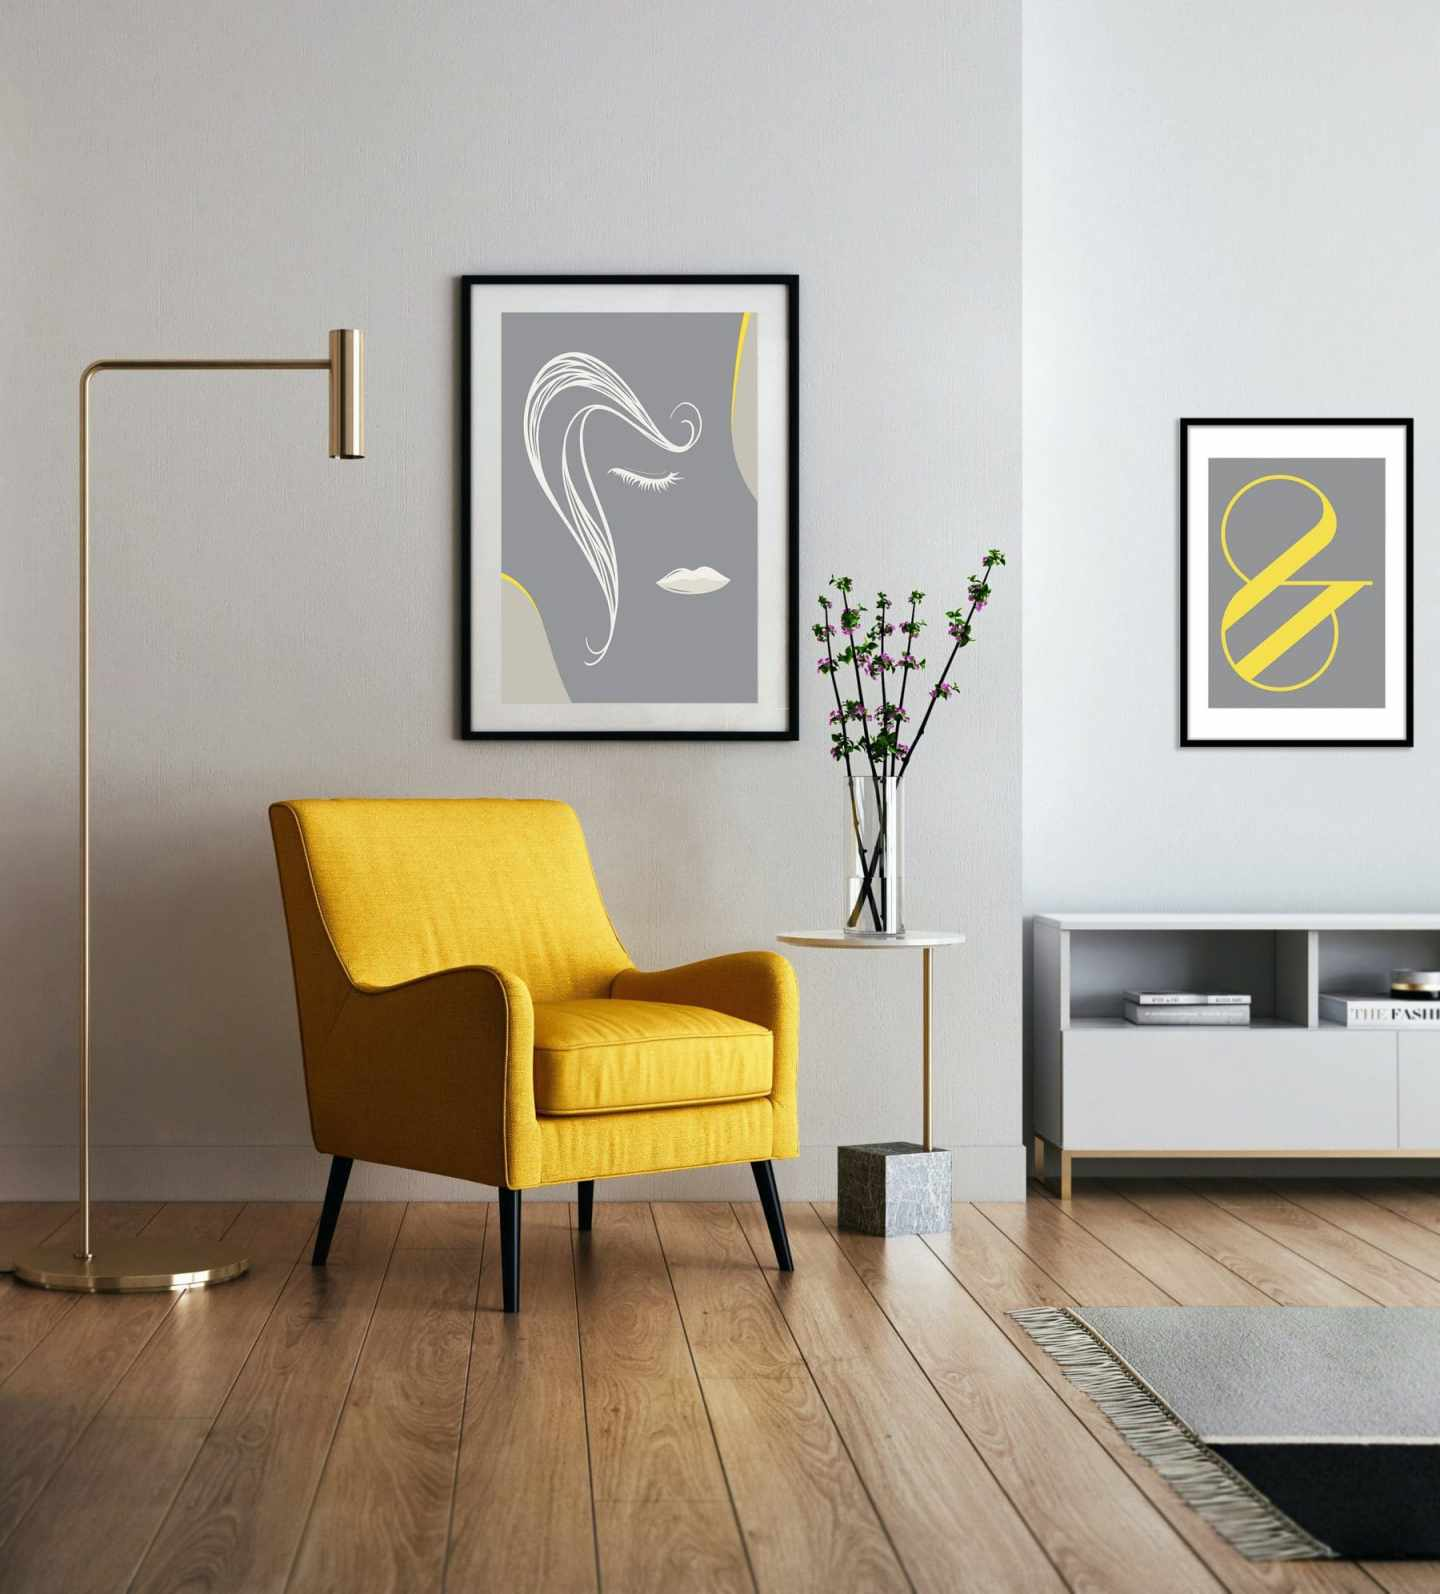 grey prints with a splash of yellow. bright yellow armchair in the living room